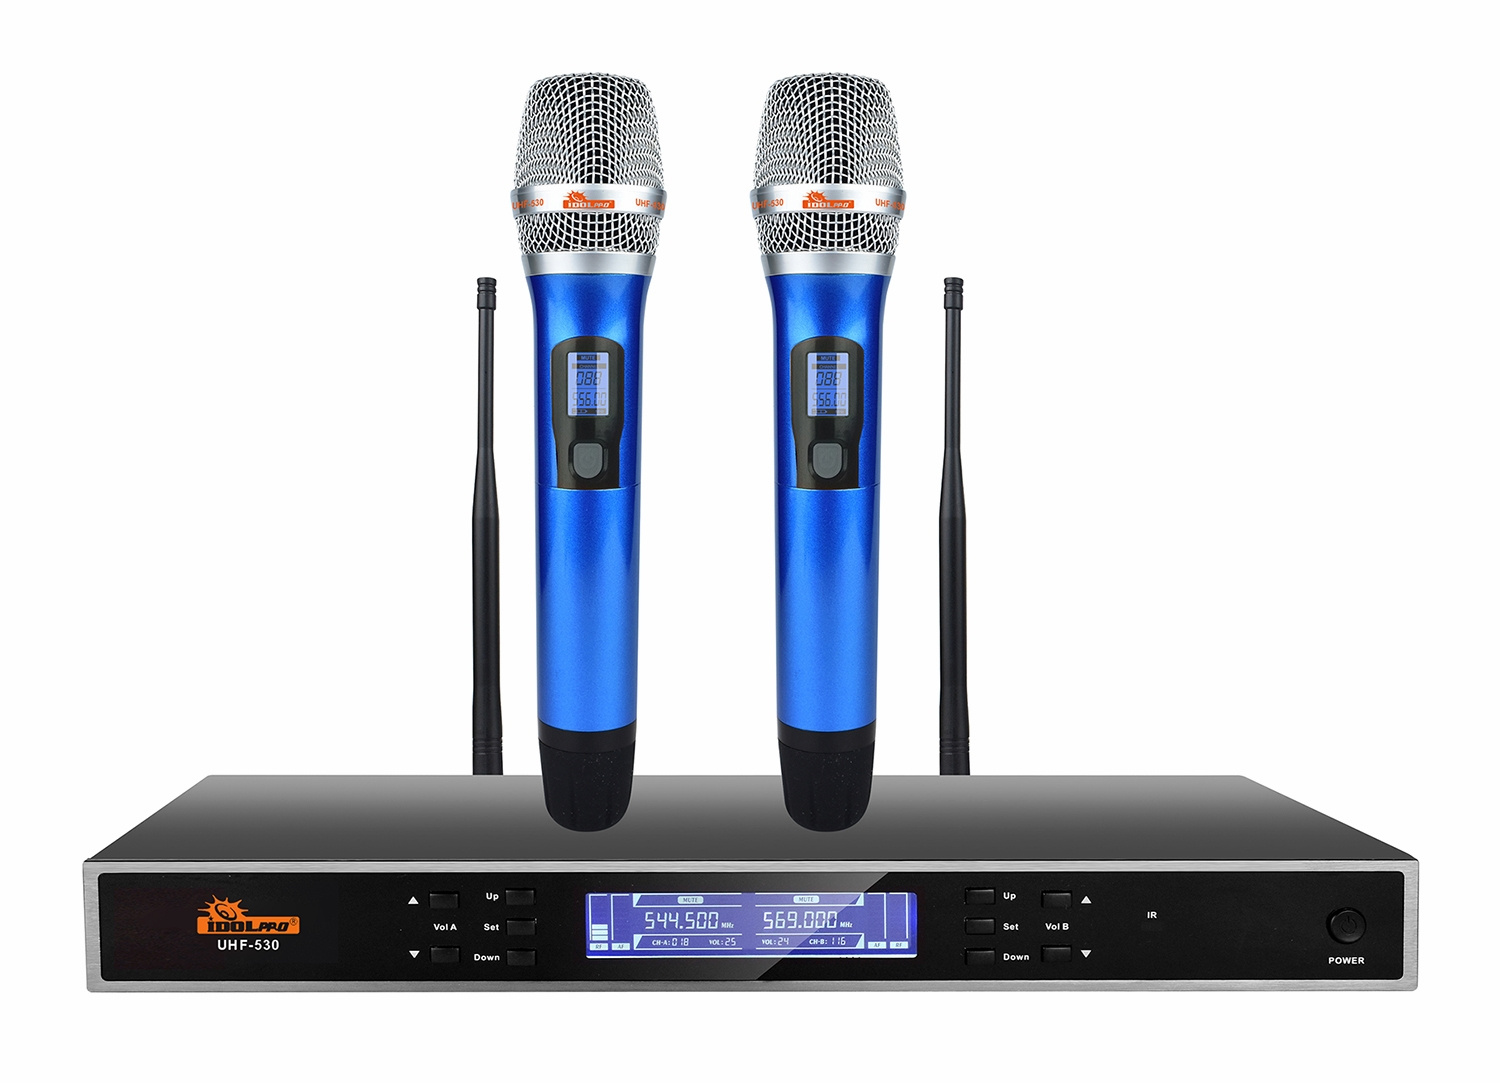 "IDOLpro UHF-530 Advanced Technology Automatic Mute And Shut Down Dual Wireless Microphones  <b><font color="" orange"">NEW 2021 </font> </b>"